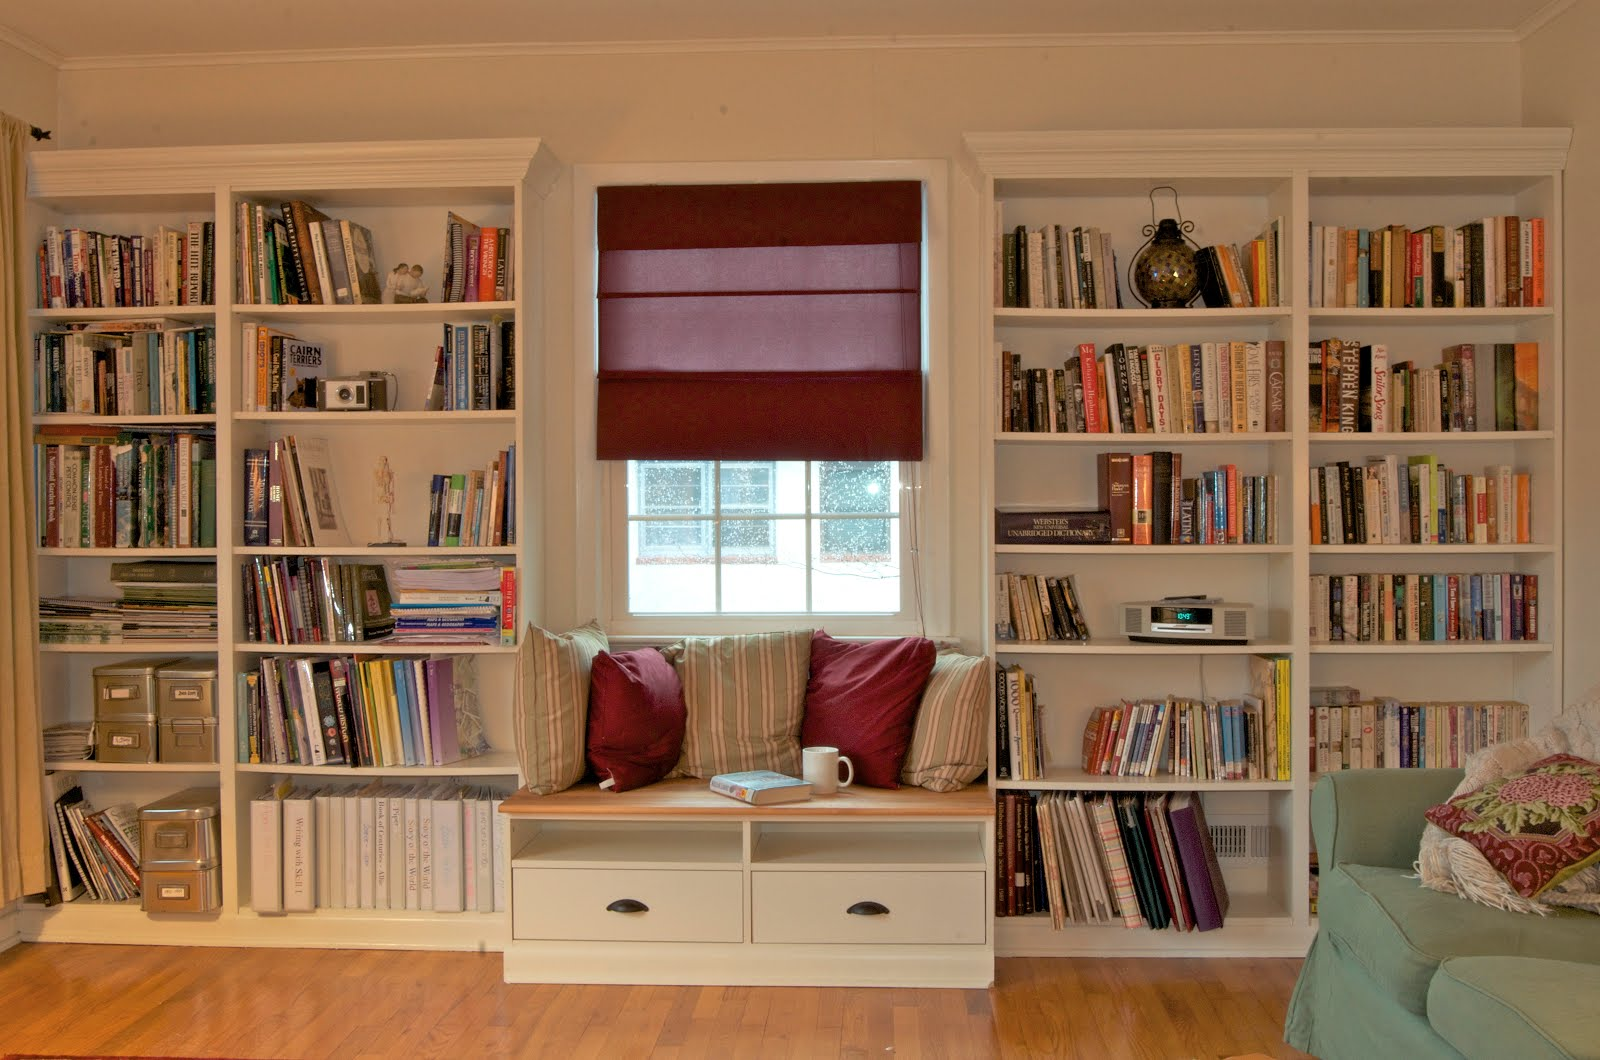 Ikea Hack Bookcase: Built In Bookshelves With Window-seat For Under $350